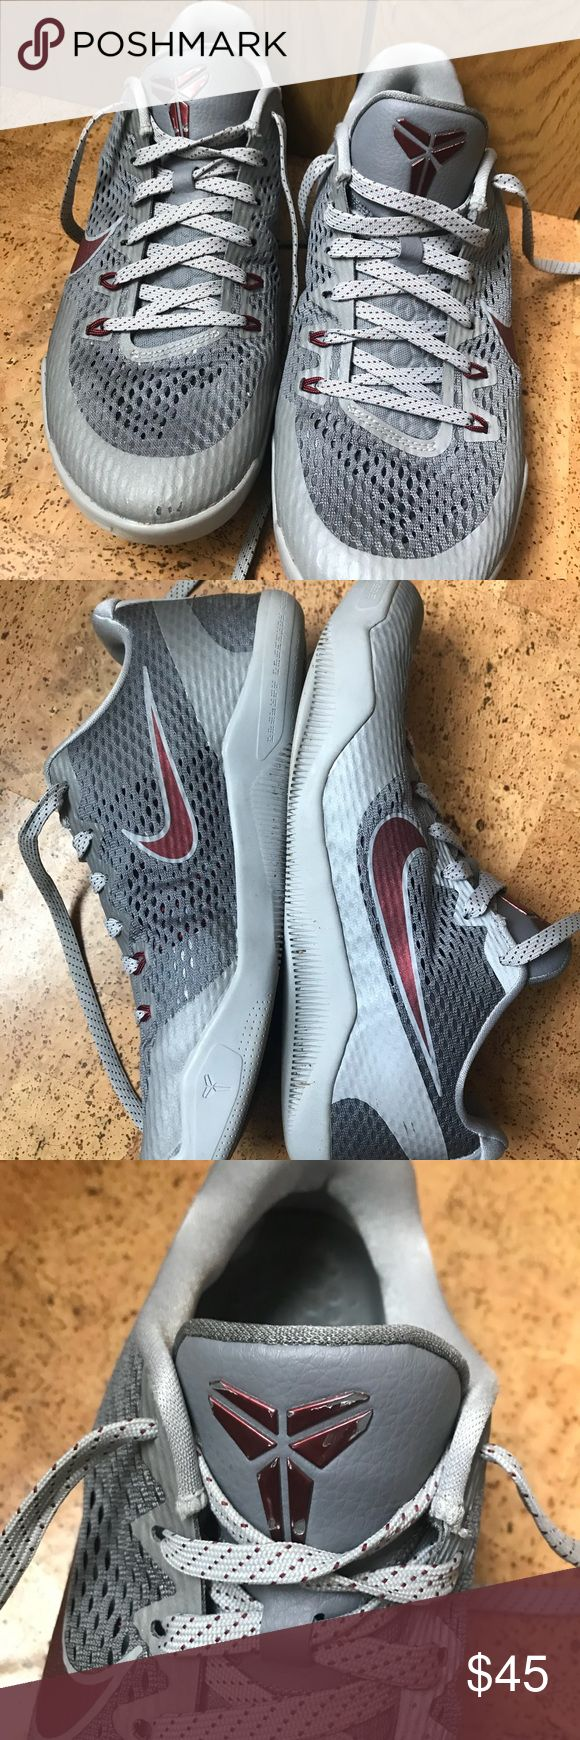 Kobe 11 basketball shoes Kobe 11, worn a few times but still in good condition. Paint came off one side of the Kobe symbol of the tongue. A scruff on the front of one. Will be cleaned and polished before shipment. Nike Shoes Athletic Shoes